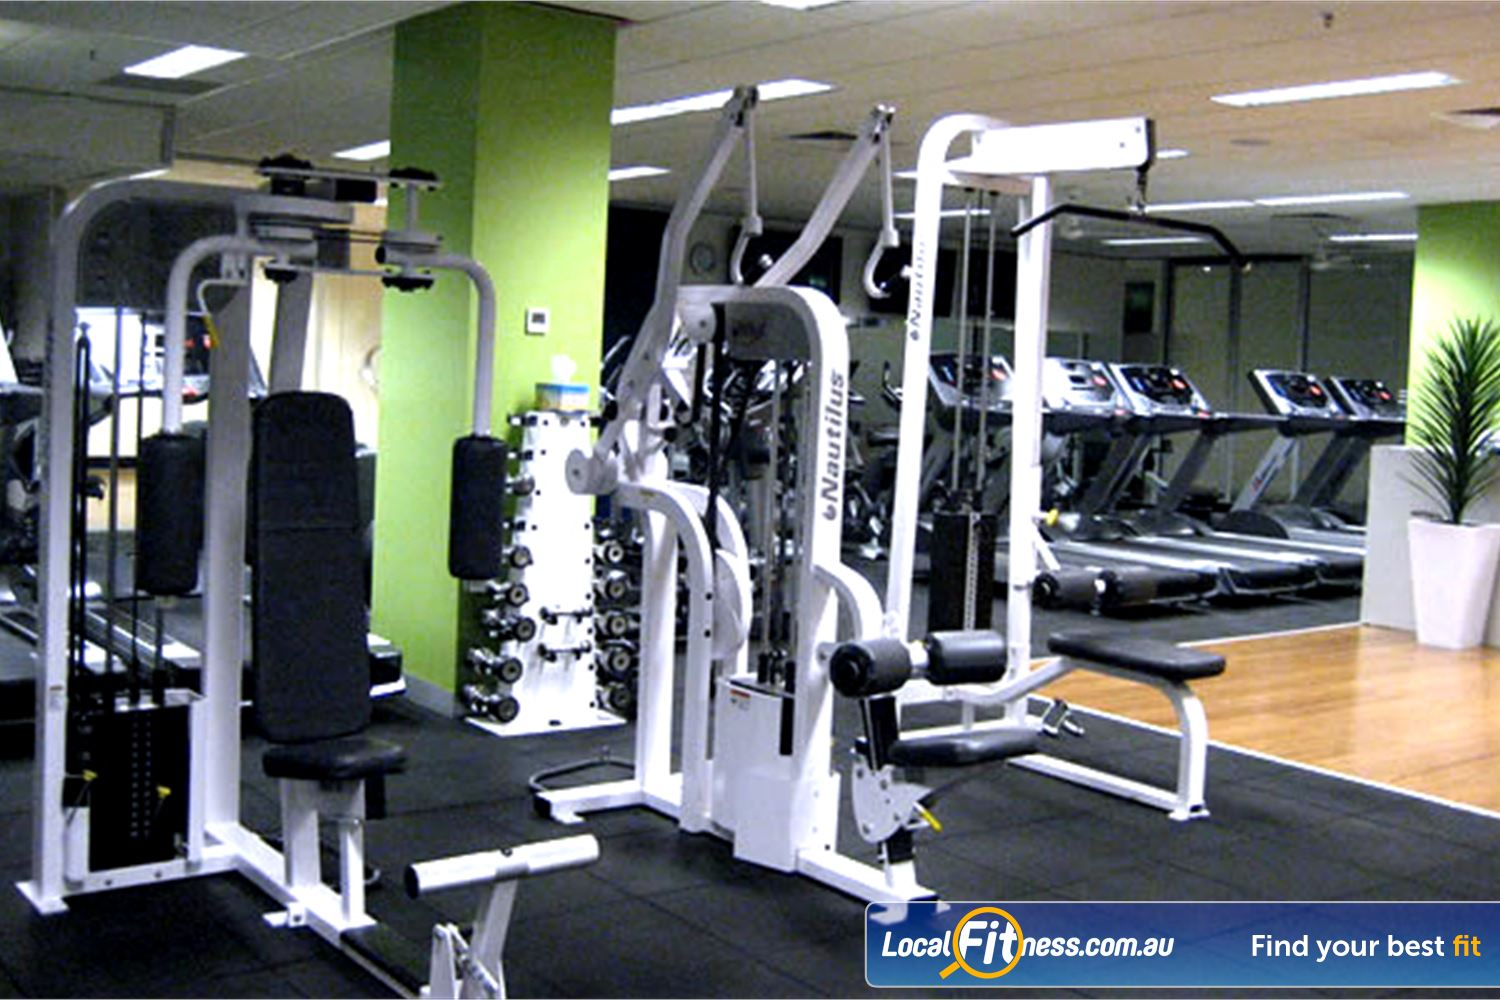 The Toorak Health Club Near Kooyong State of the art strength equipment.